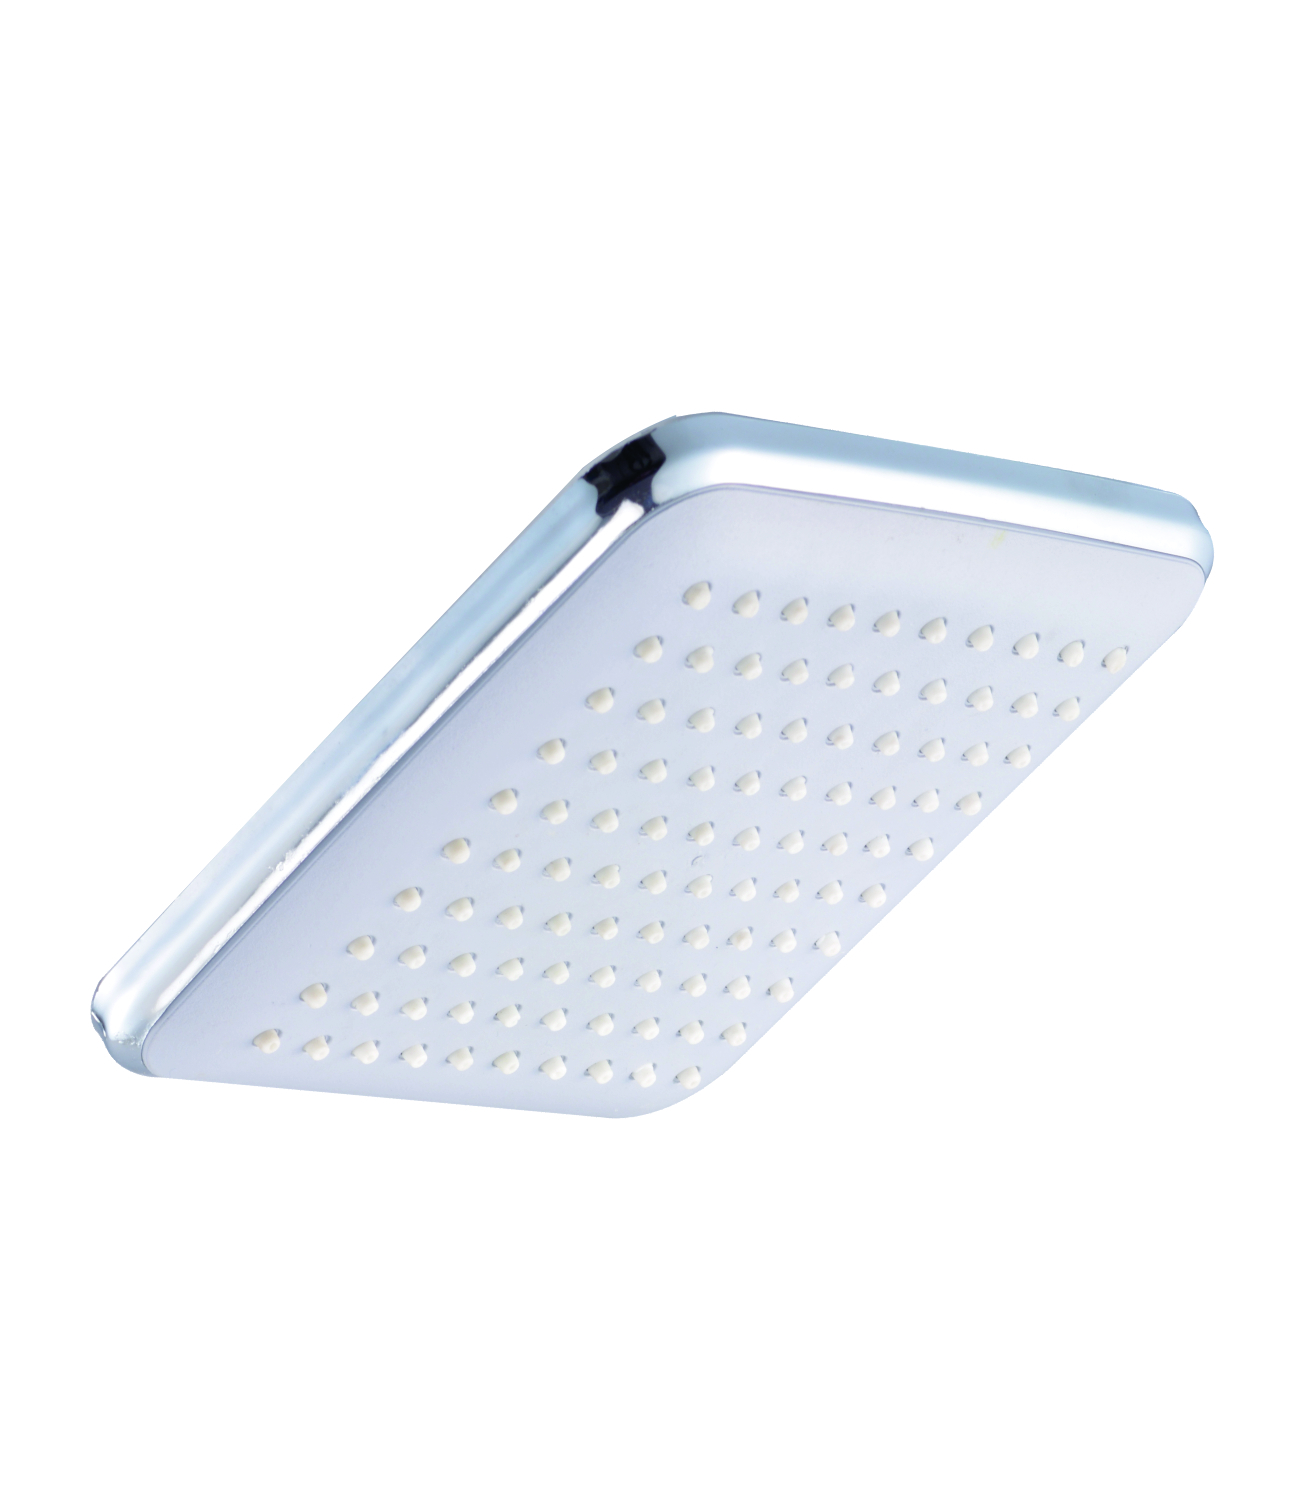 Abs Square Rain Shower